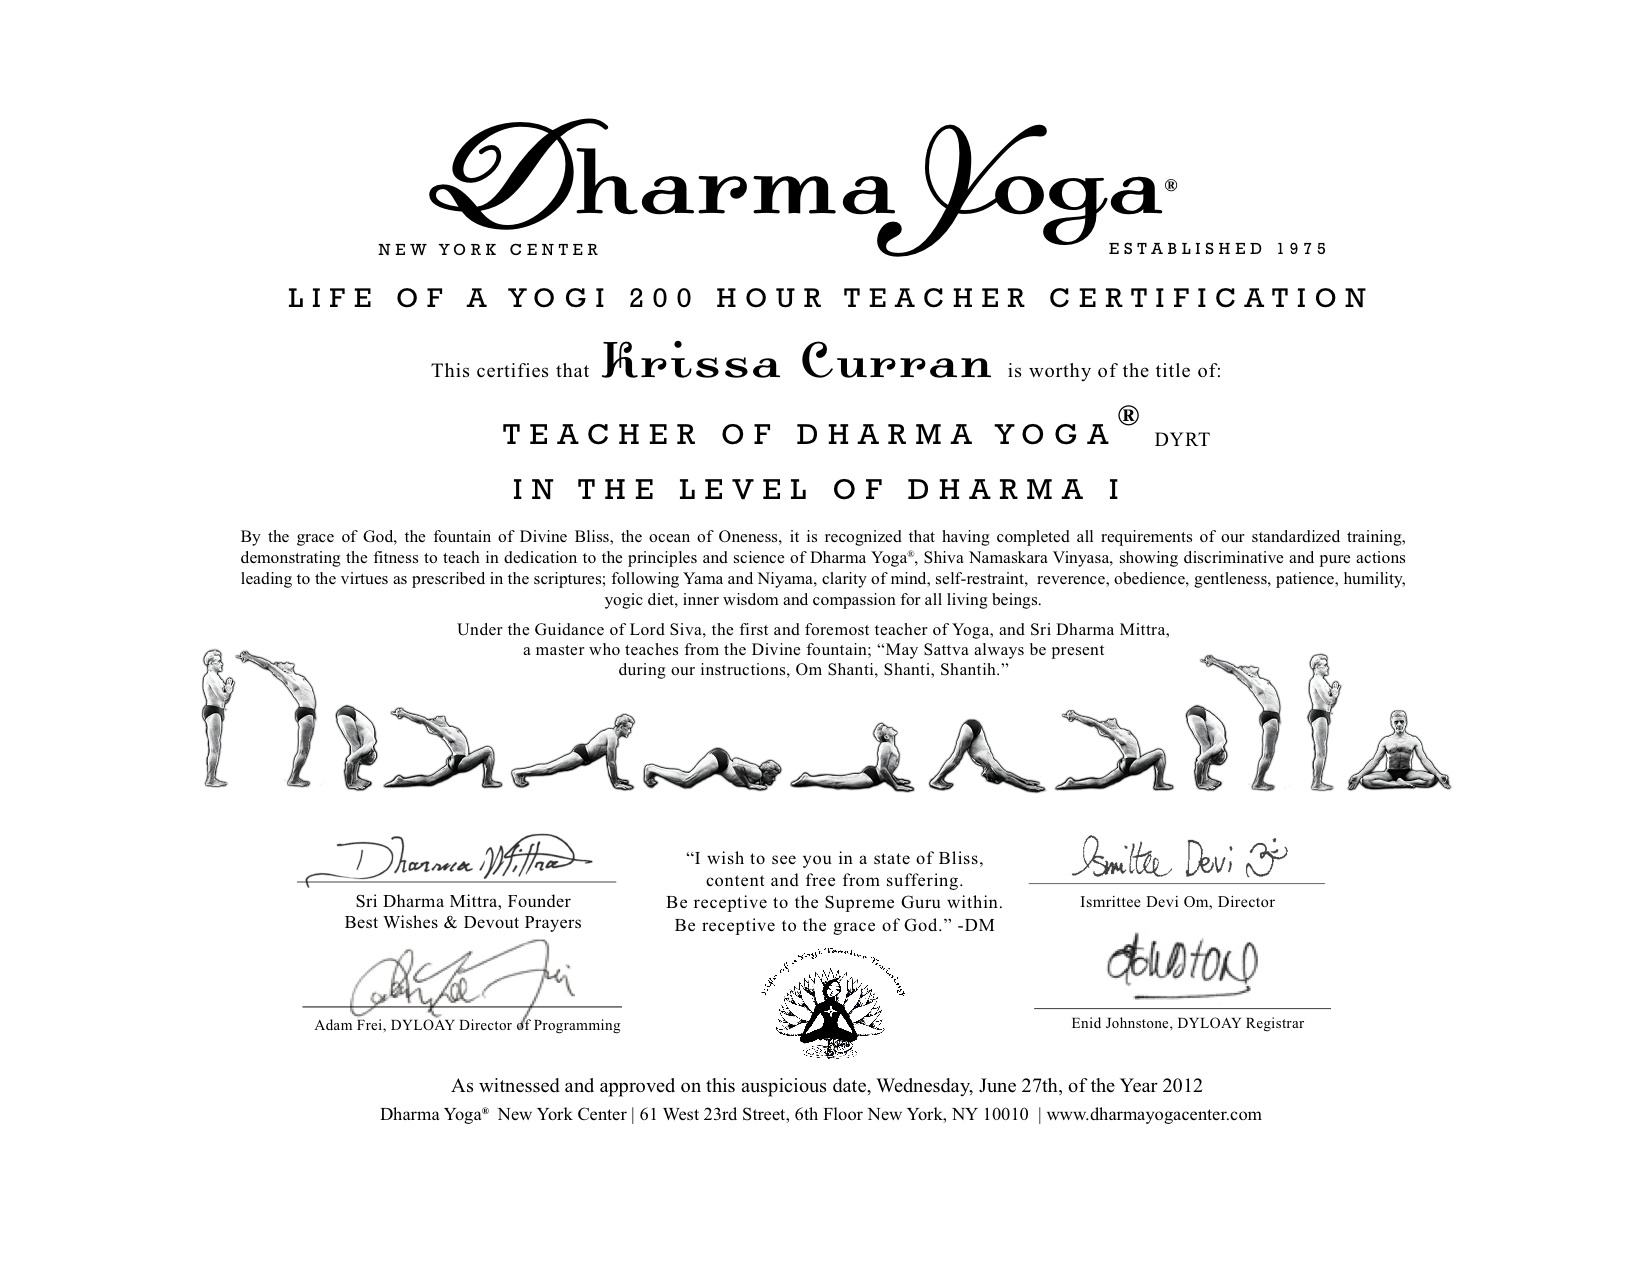 Day 340 The Day I Become A Fully Certified Dyrt Yoga Teacher T